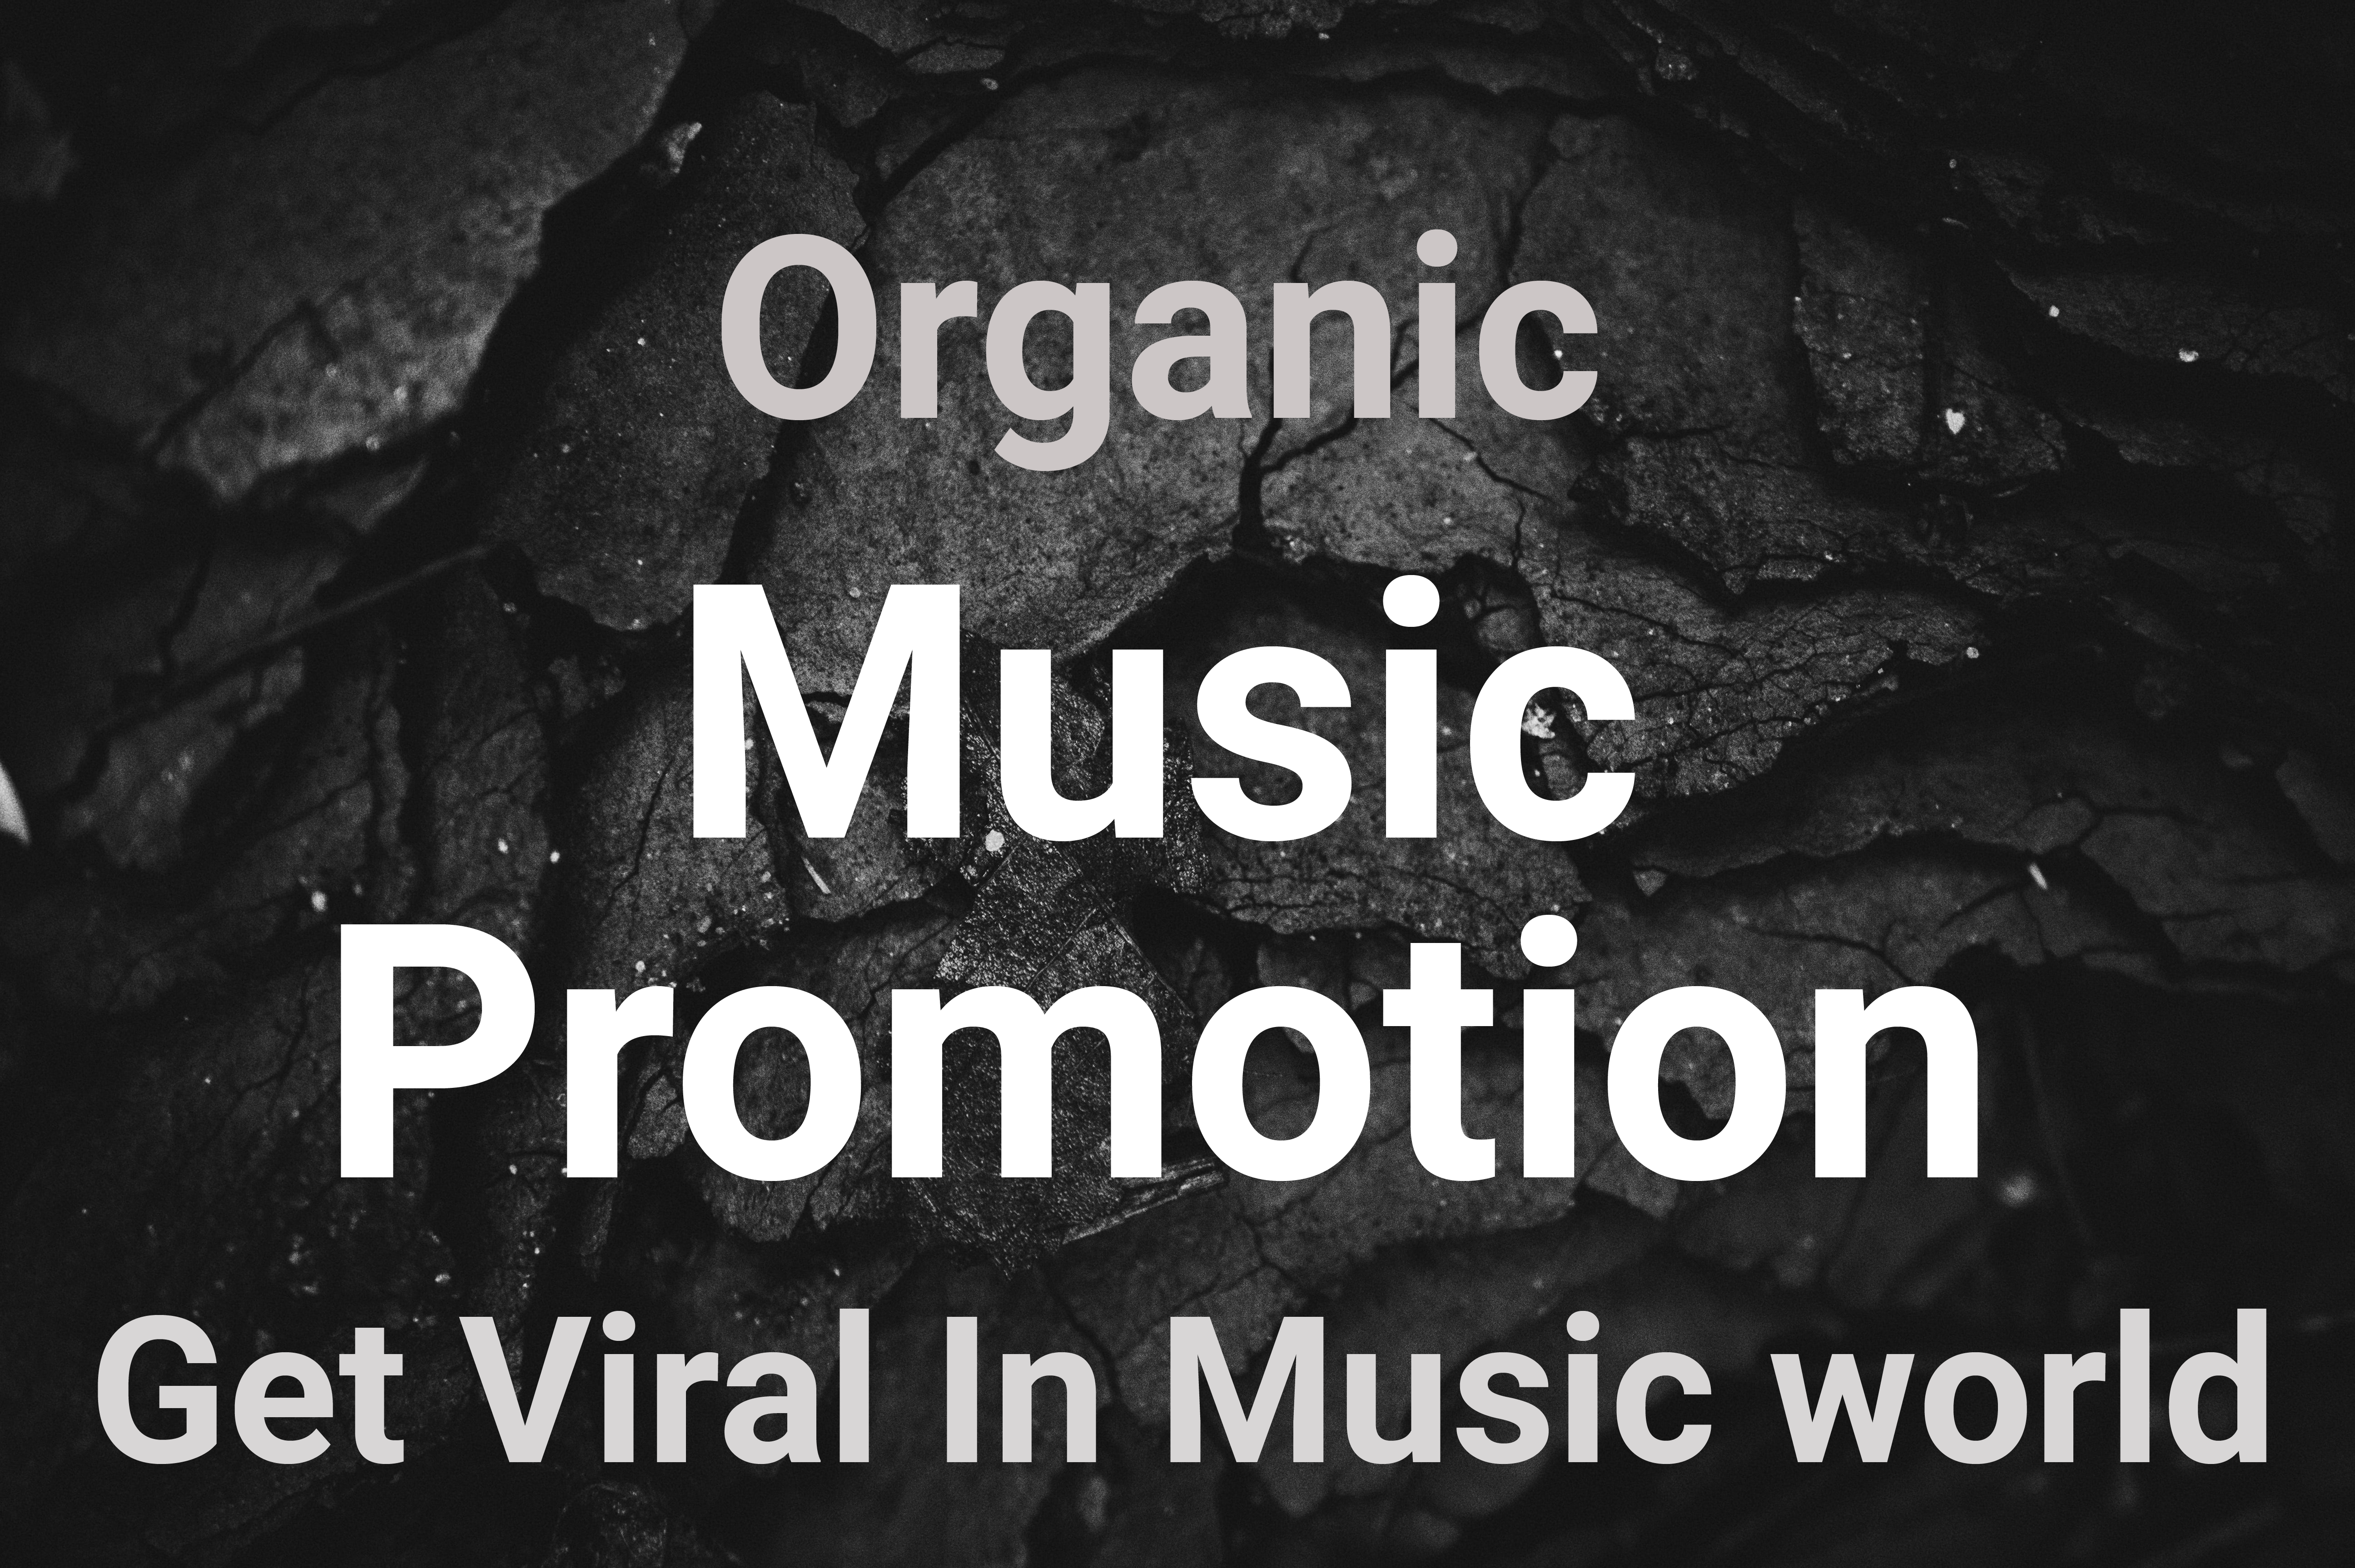 Rank your music album or playlists through organic music promotion strategy